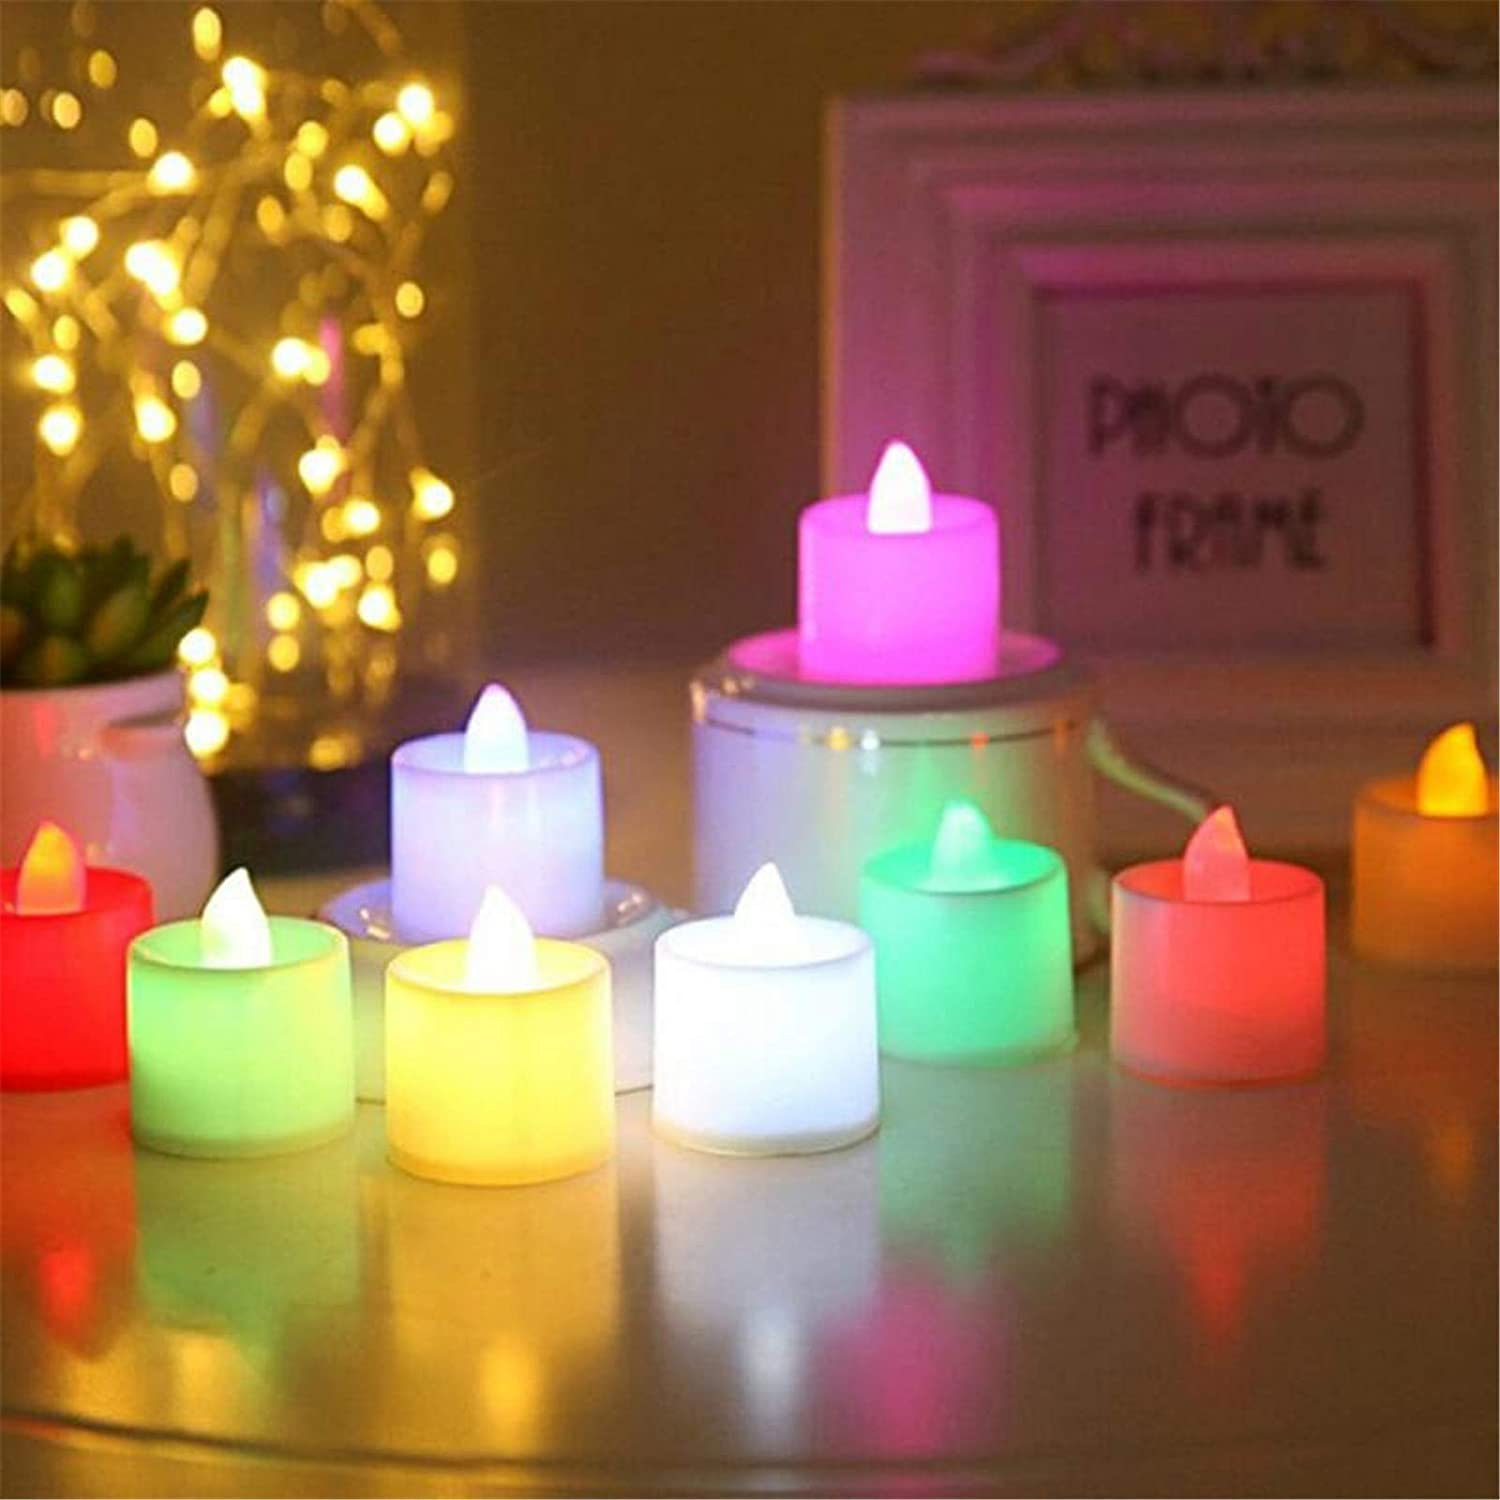 Pack of 48 LED Flameless Candle Battery Operated Flickering Electric Tea Light Candles for Bedroom Home Decorations Wedding Party Festival Halloween Pumpkin Lamp Christmas (Multiple Colour)